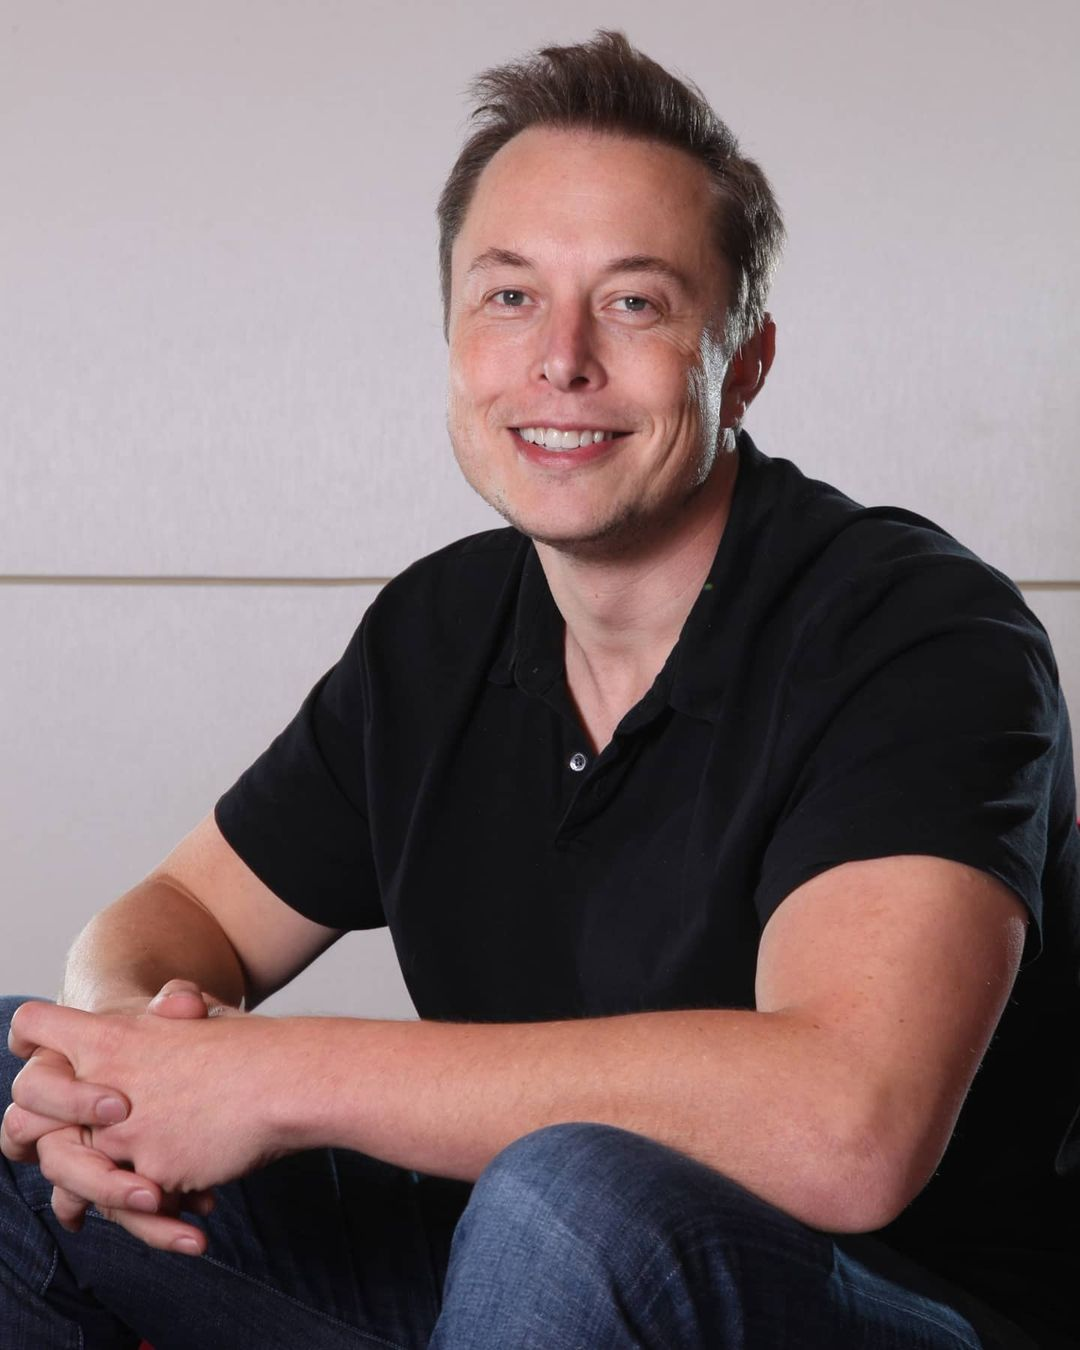 Humanity is a Religion (A defence for Elon Musk)